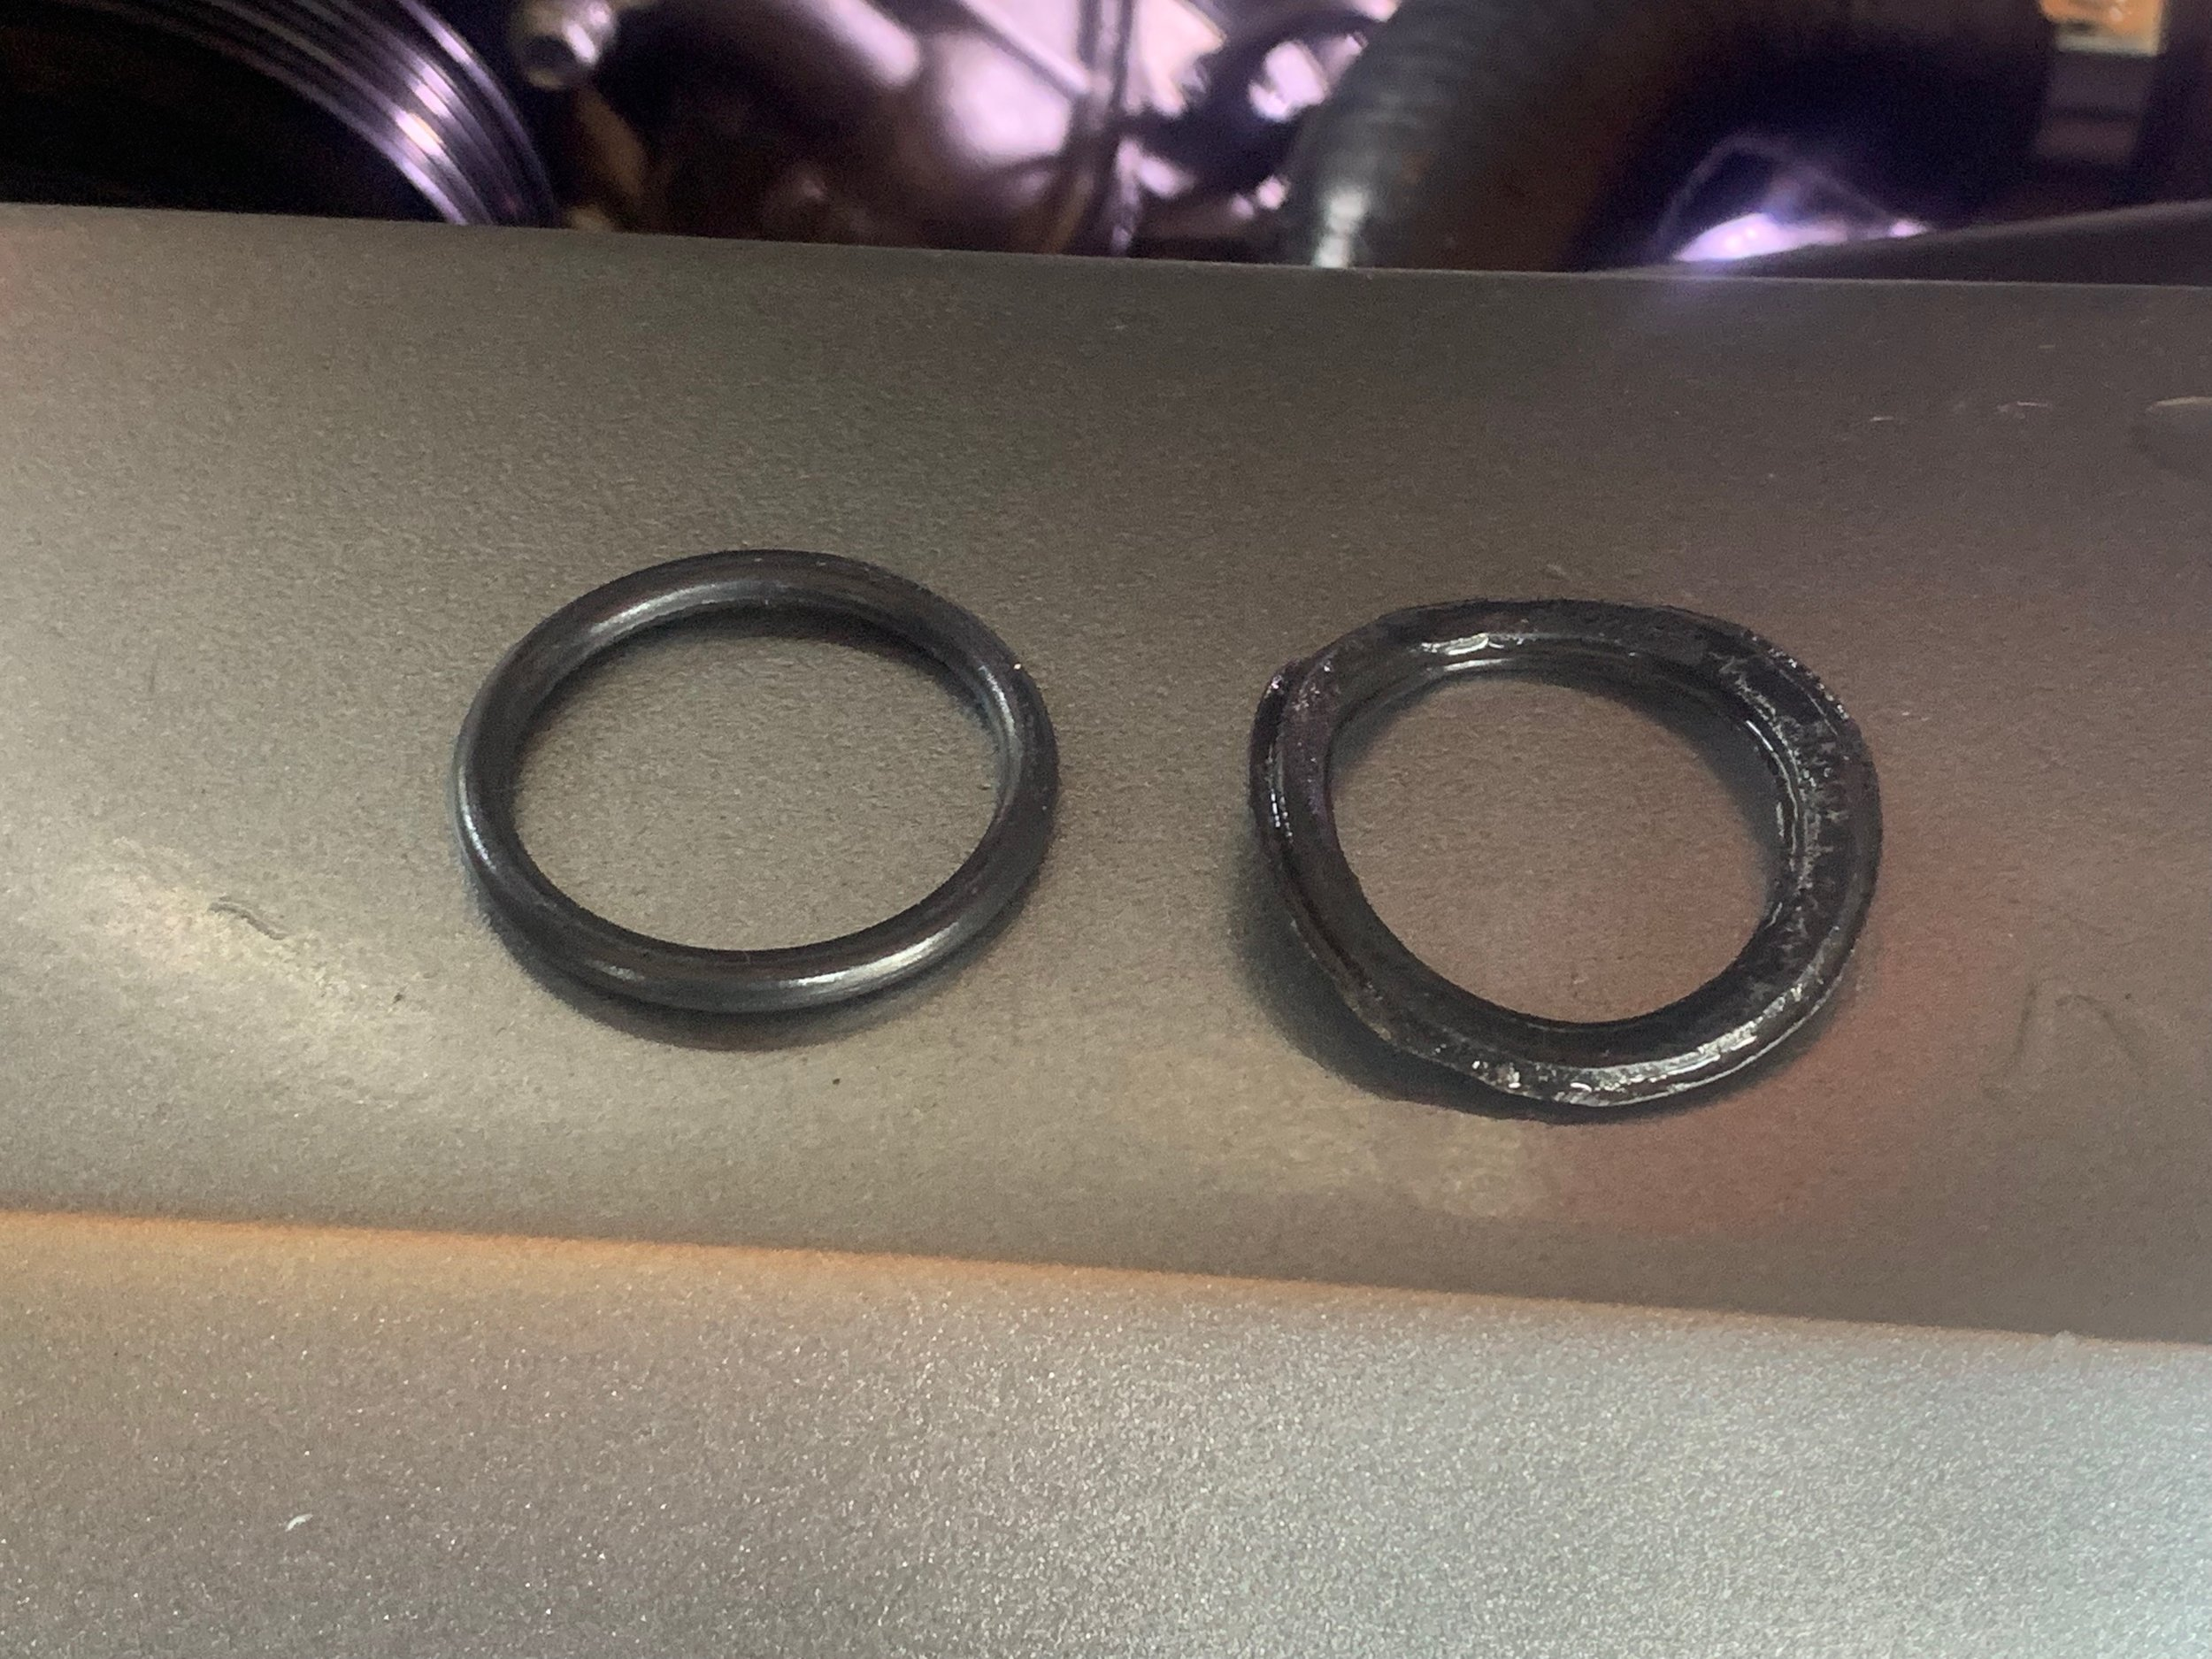 And this is why you should always replace O-rings. A new one is on the left, while an old one is on the right.